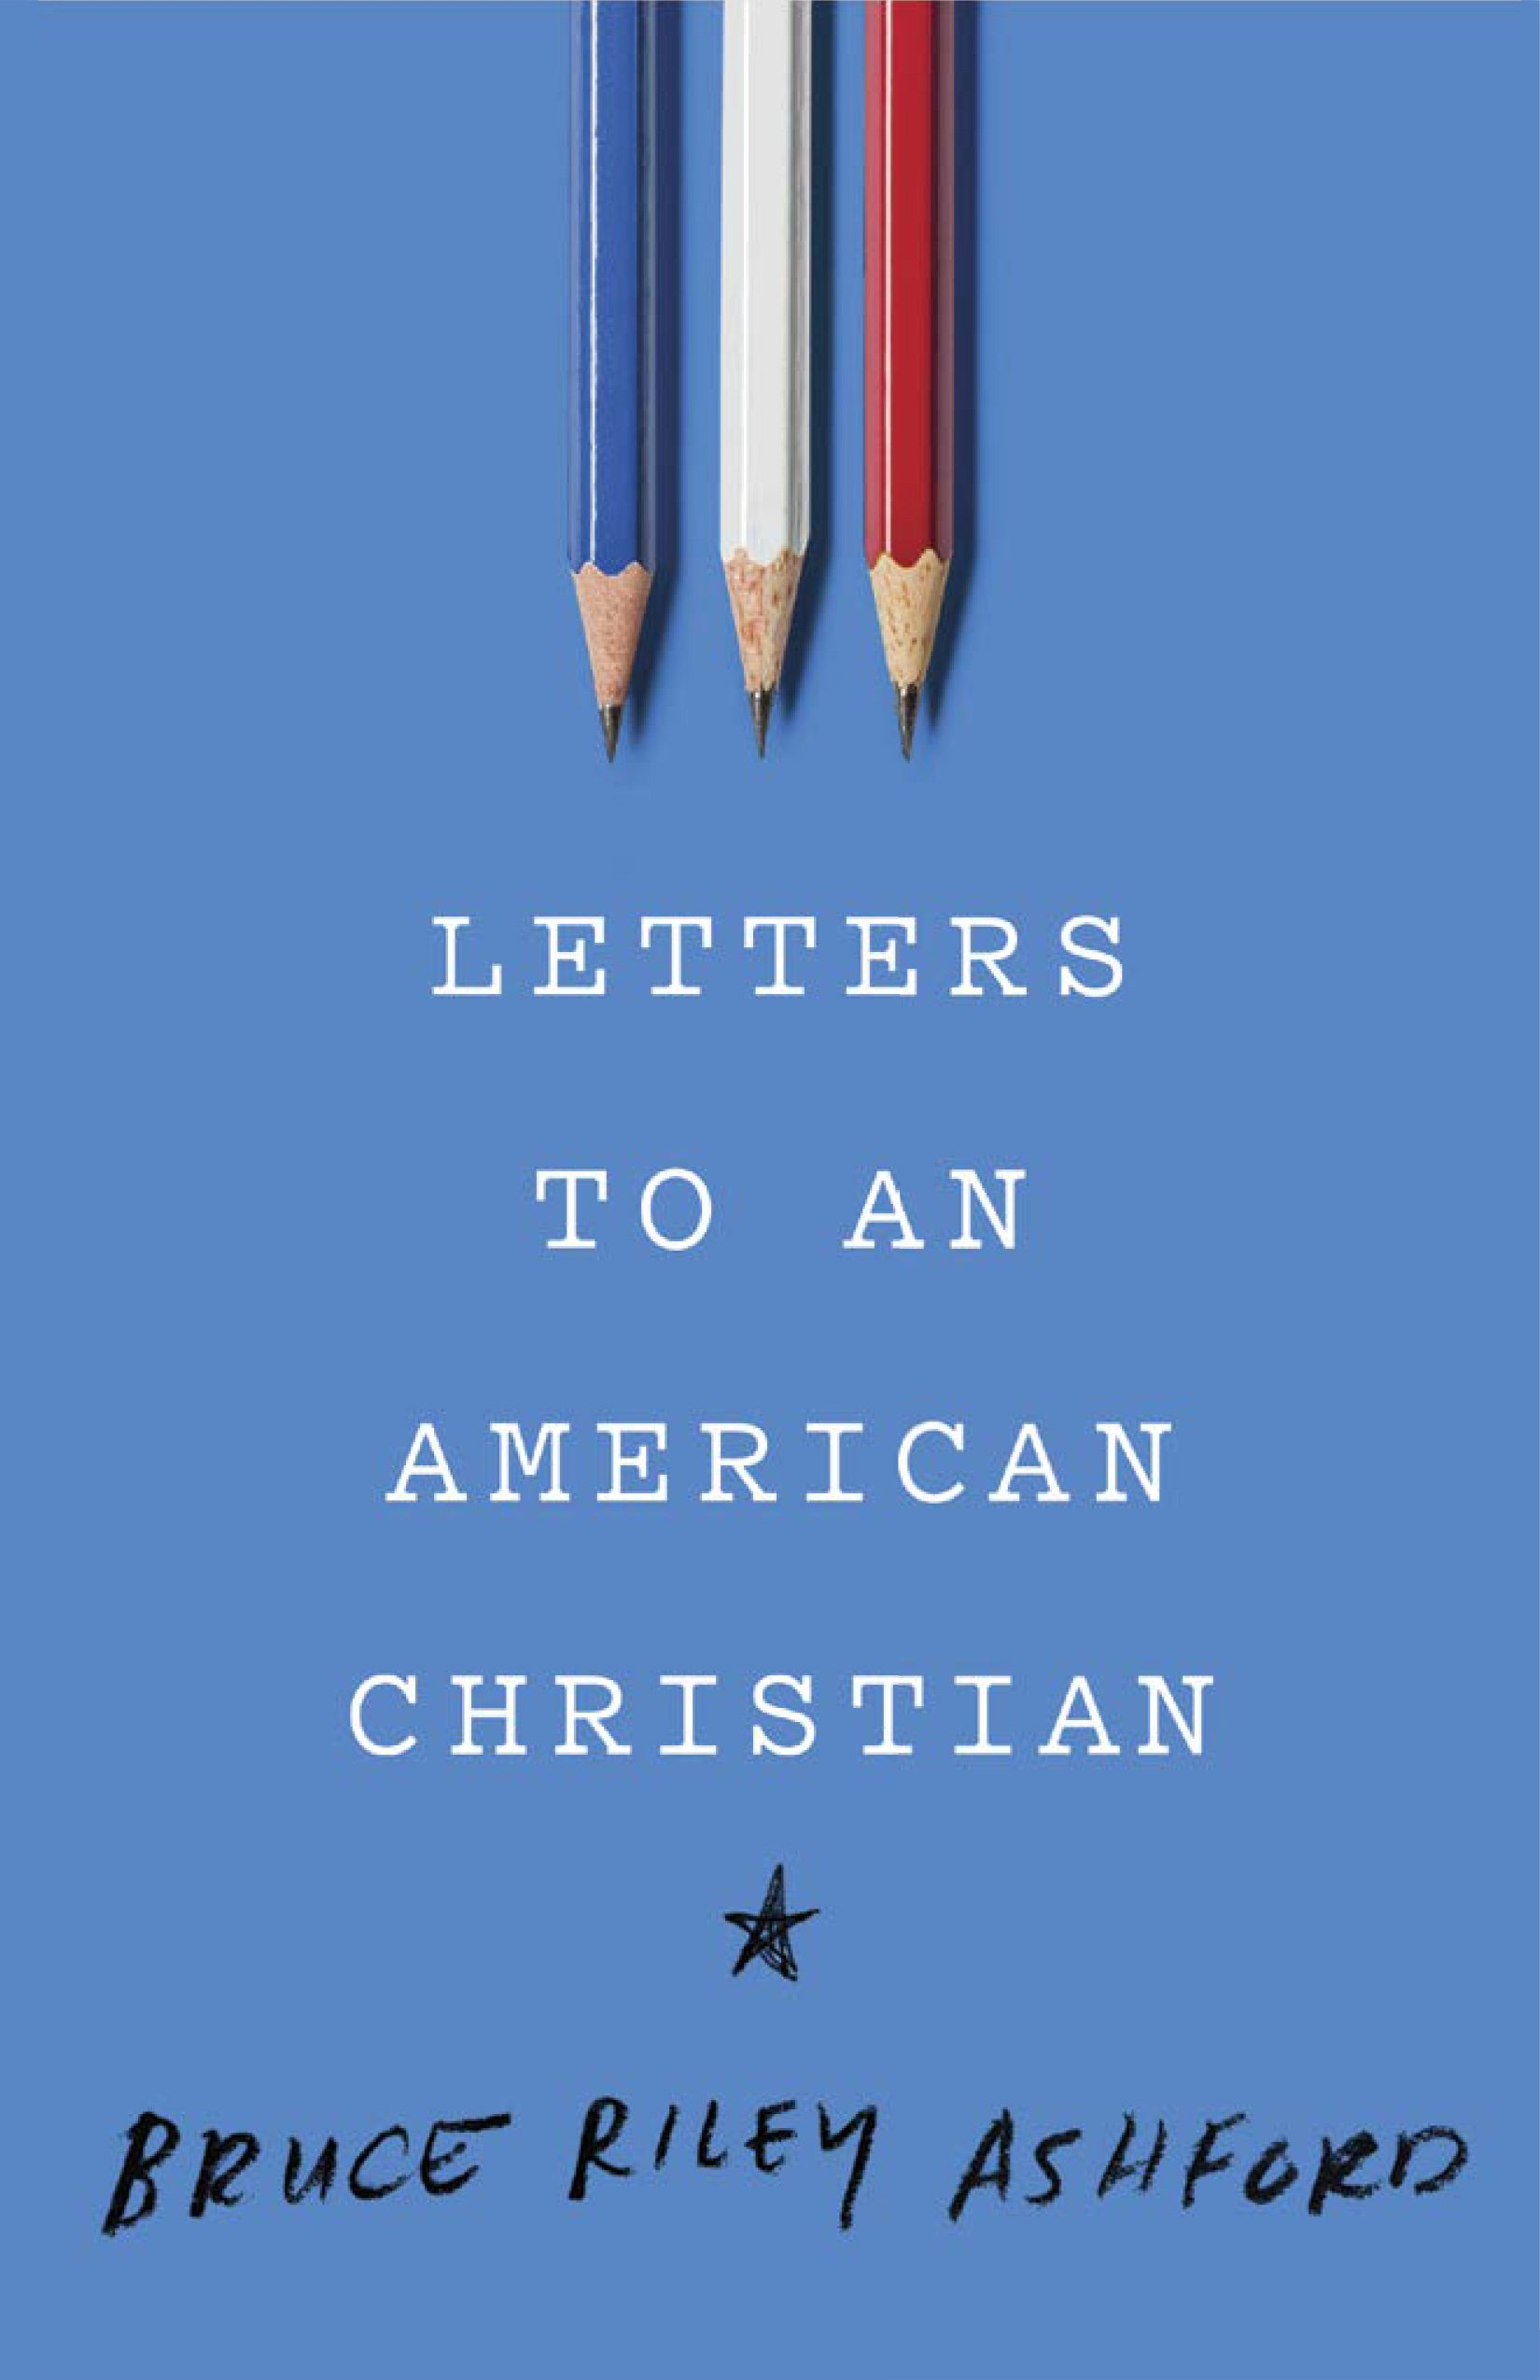 Letters To An American Christian Bruce Riley Ashford 9781535905138